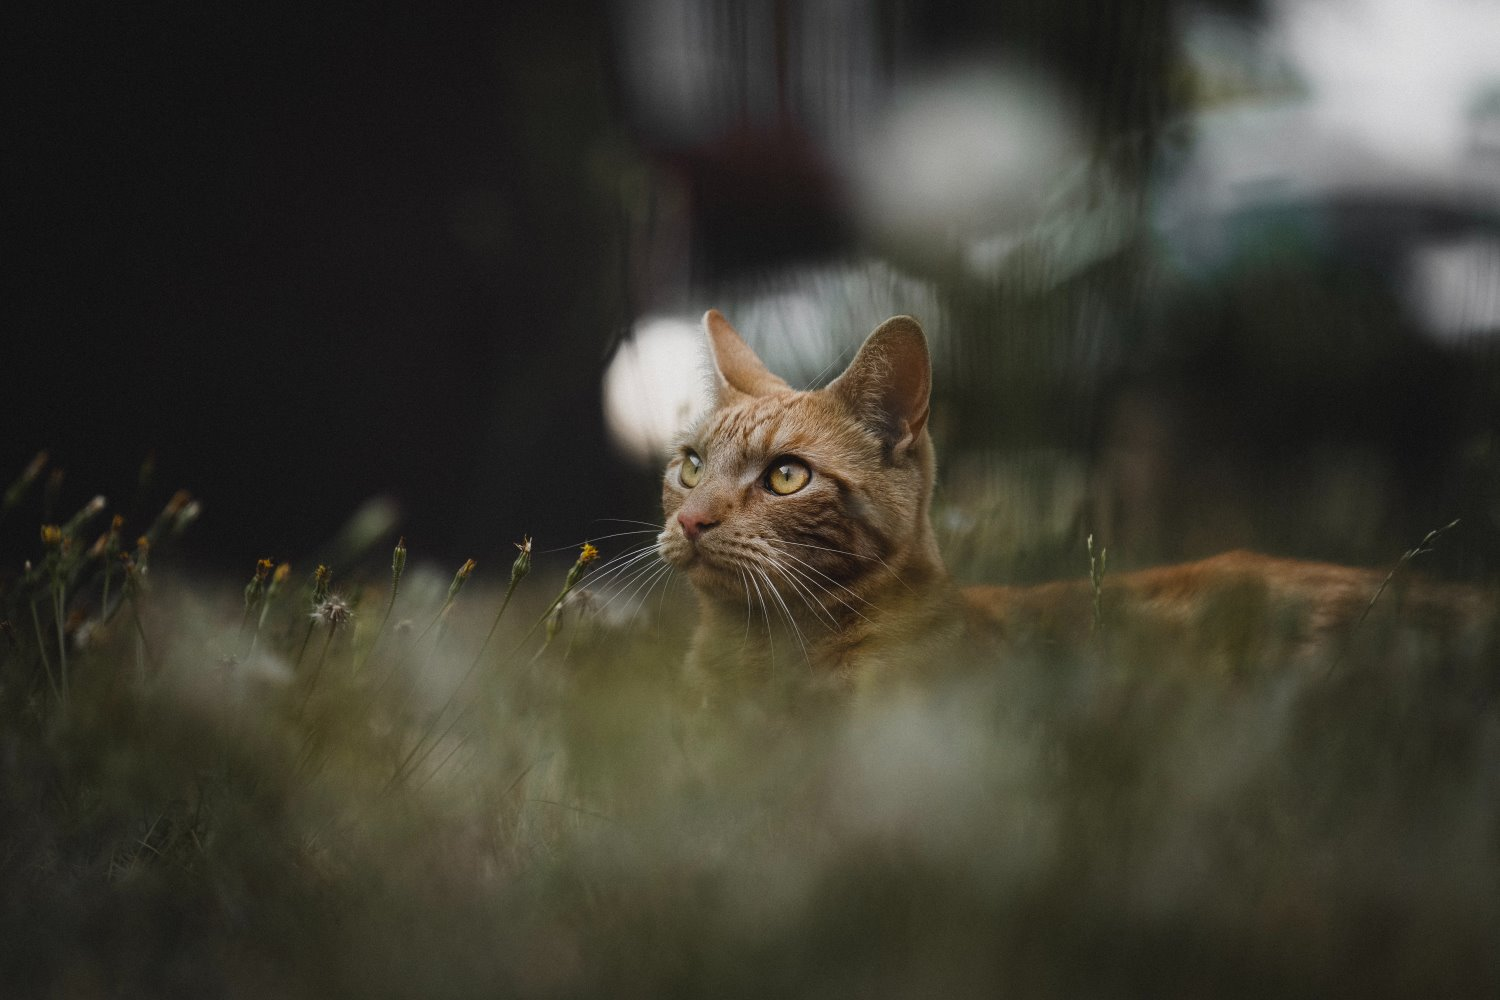 cat in the grass with blurry background